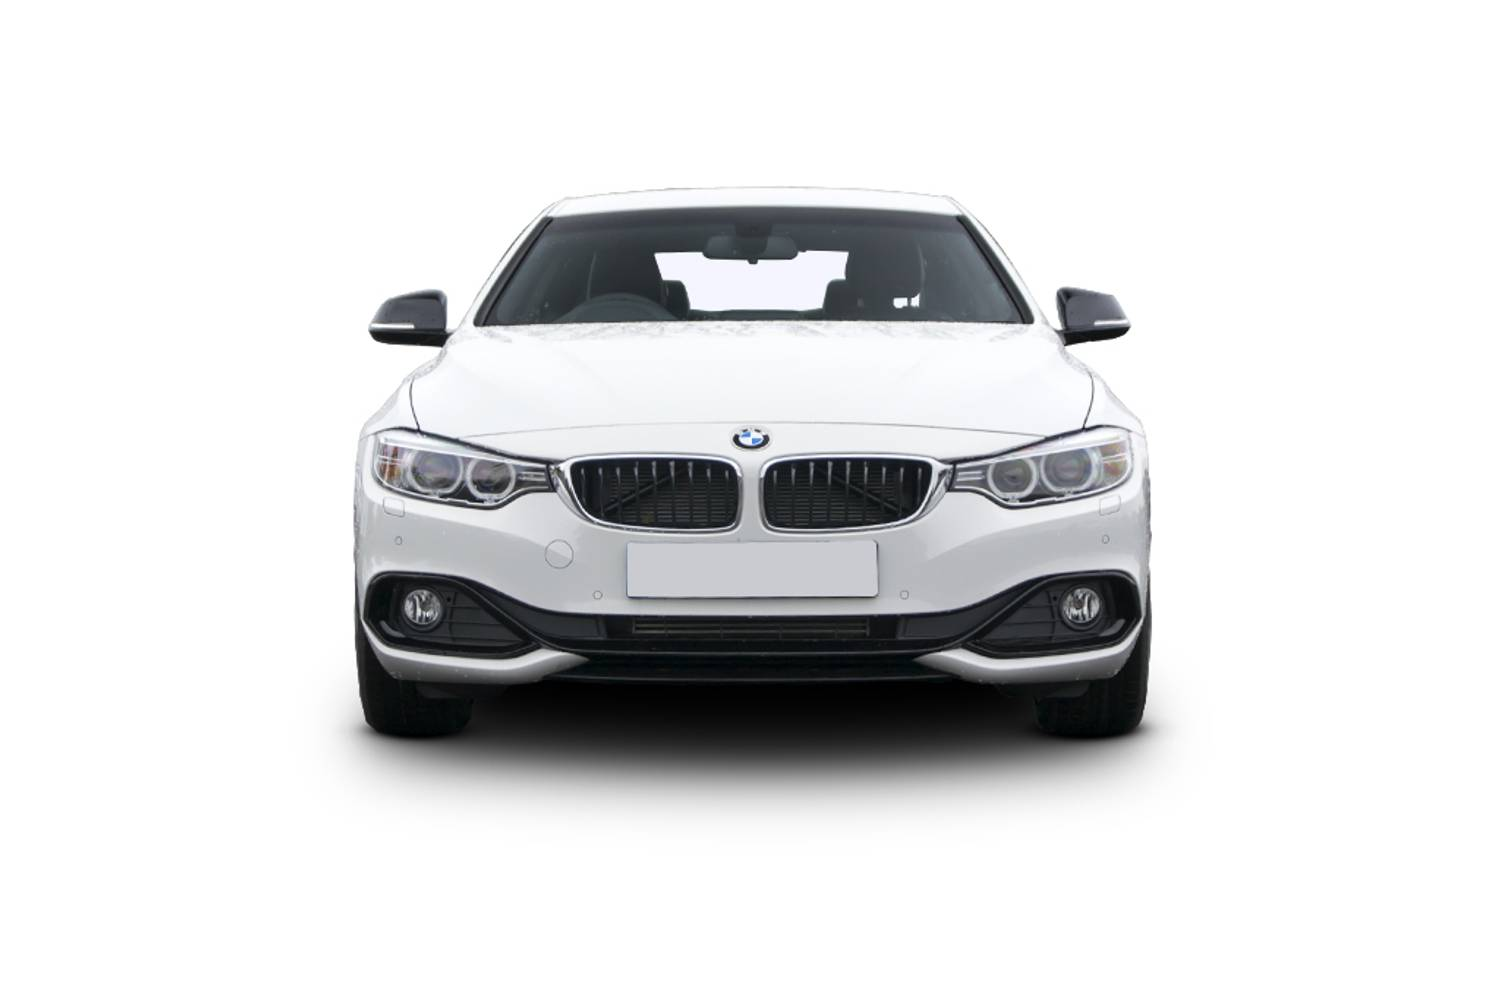 BMW 4 Series Coupe 2dr Front